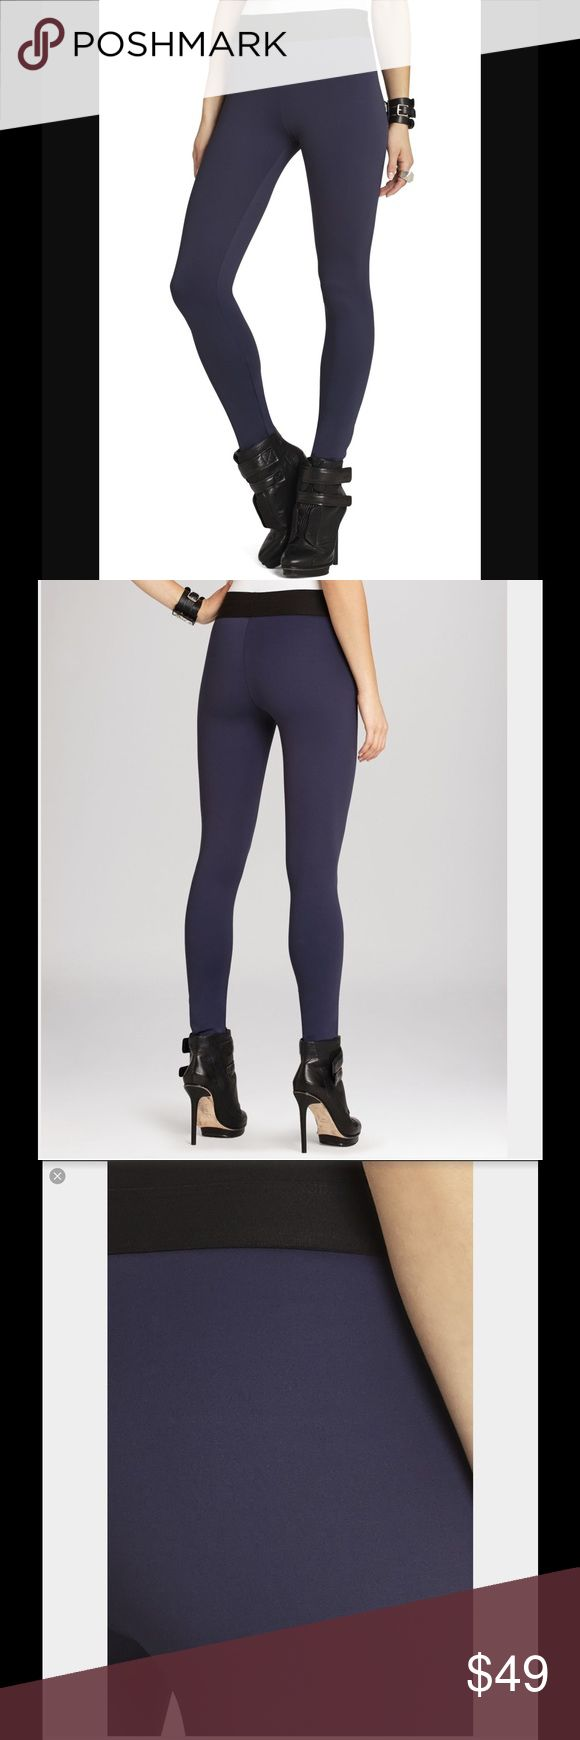 """BCBG Mason Navy Blue Skinny Pant Leggings sz XS High waist, pull-on, size XS, fabric: 77% rayon/18% nylon/5% spandex ponte, washable, color: navy, new with BCBG tag that says """"returns not excepted without this tag"""" but the main tag (indicating style and price) is not included.  NEEDS TO GO - Will be unlisted Nov 19th!!! BCBG Pants Leggings"""